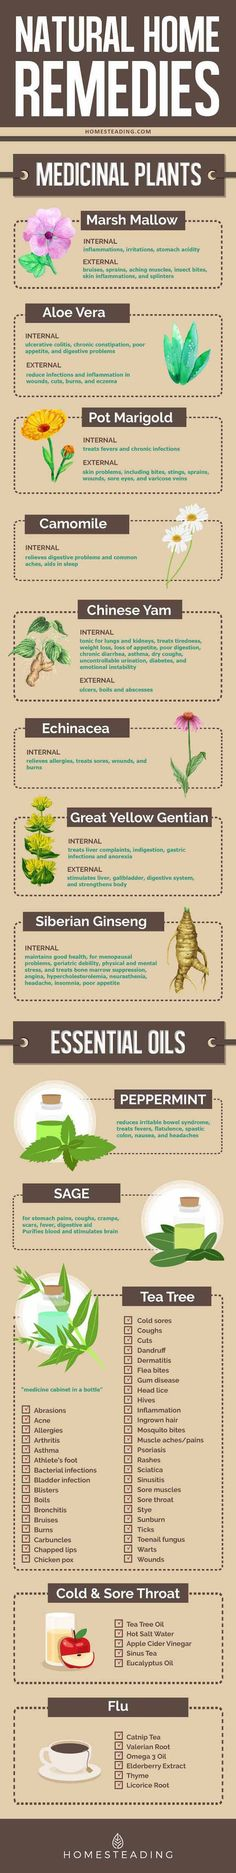 Essential Oils For First Aid Any Prepper Should Have